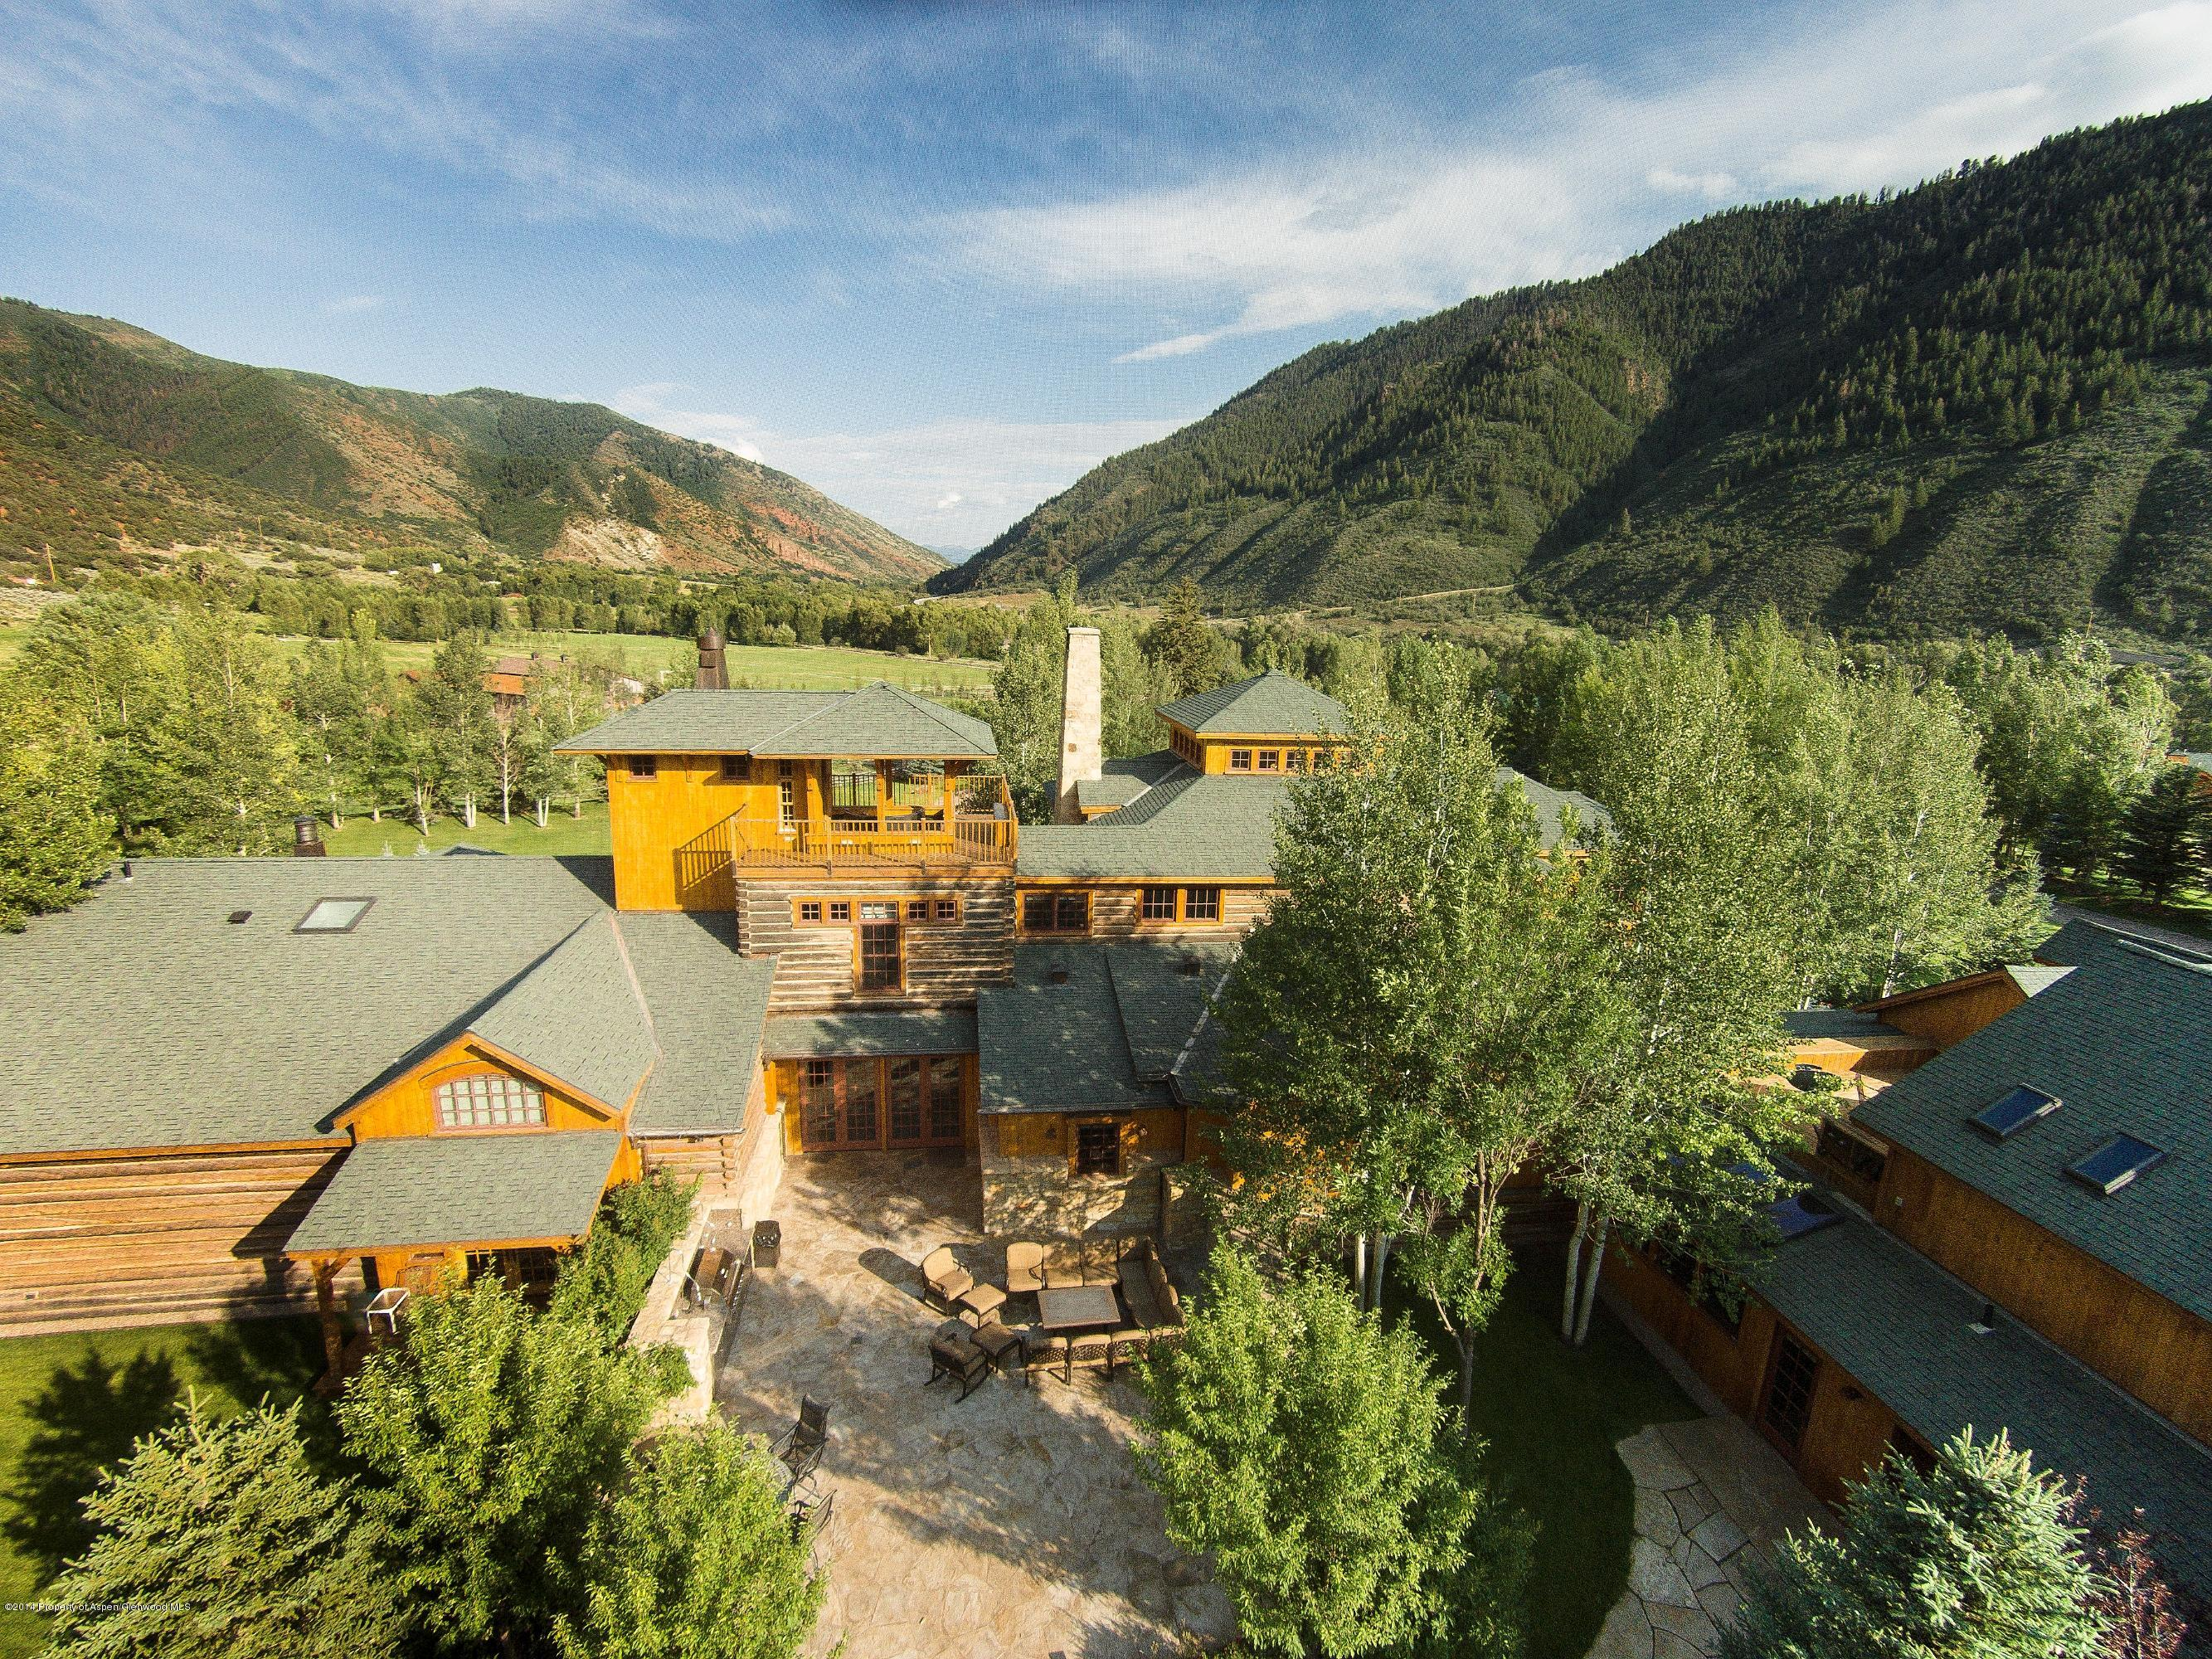 MLS# 135595 - 34 - 50 E River Ranch Road, Snowmass, CO 81654